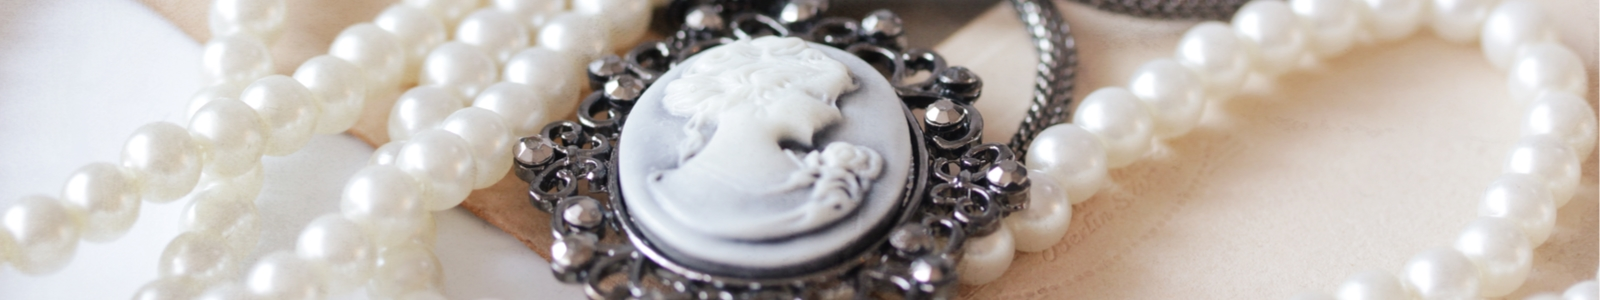 Image of family jewelry for safe deposit box.